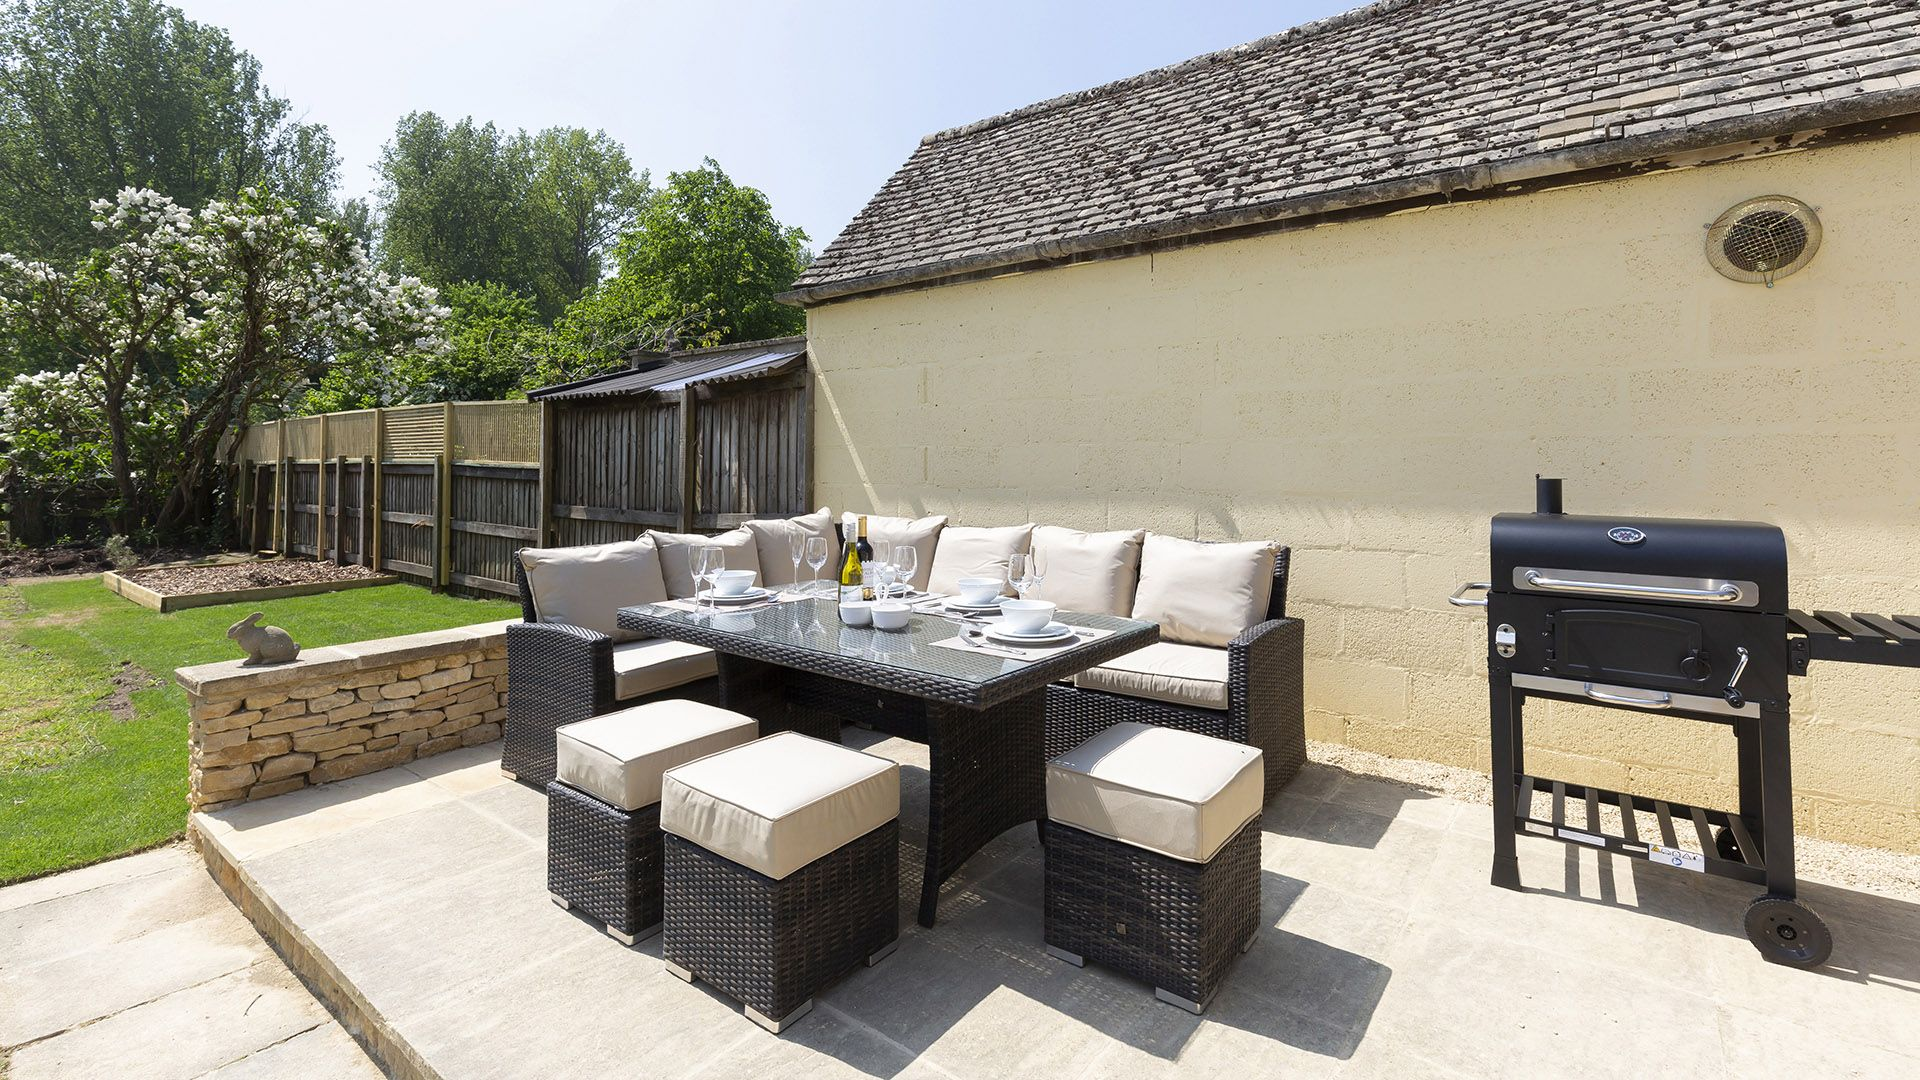 Patio area with seating and bbq, South Winds, Bolthole Retreats